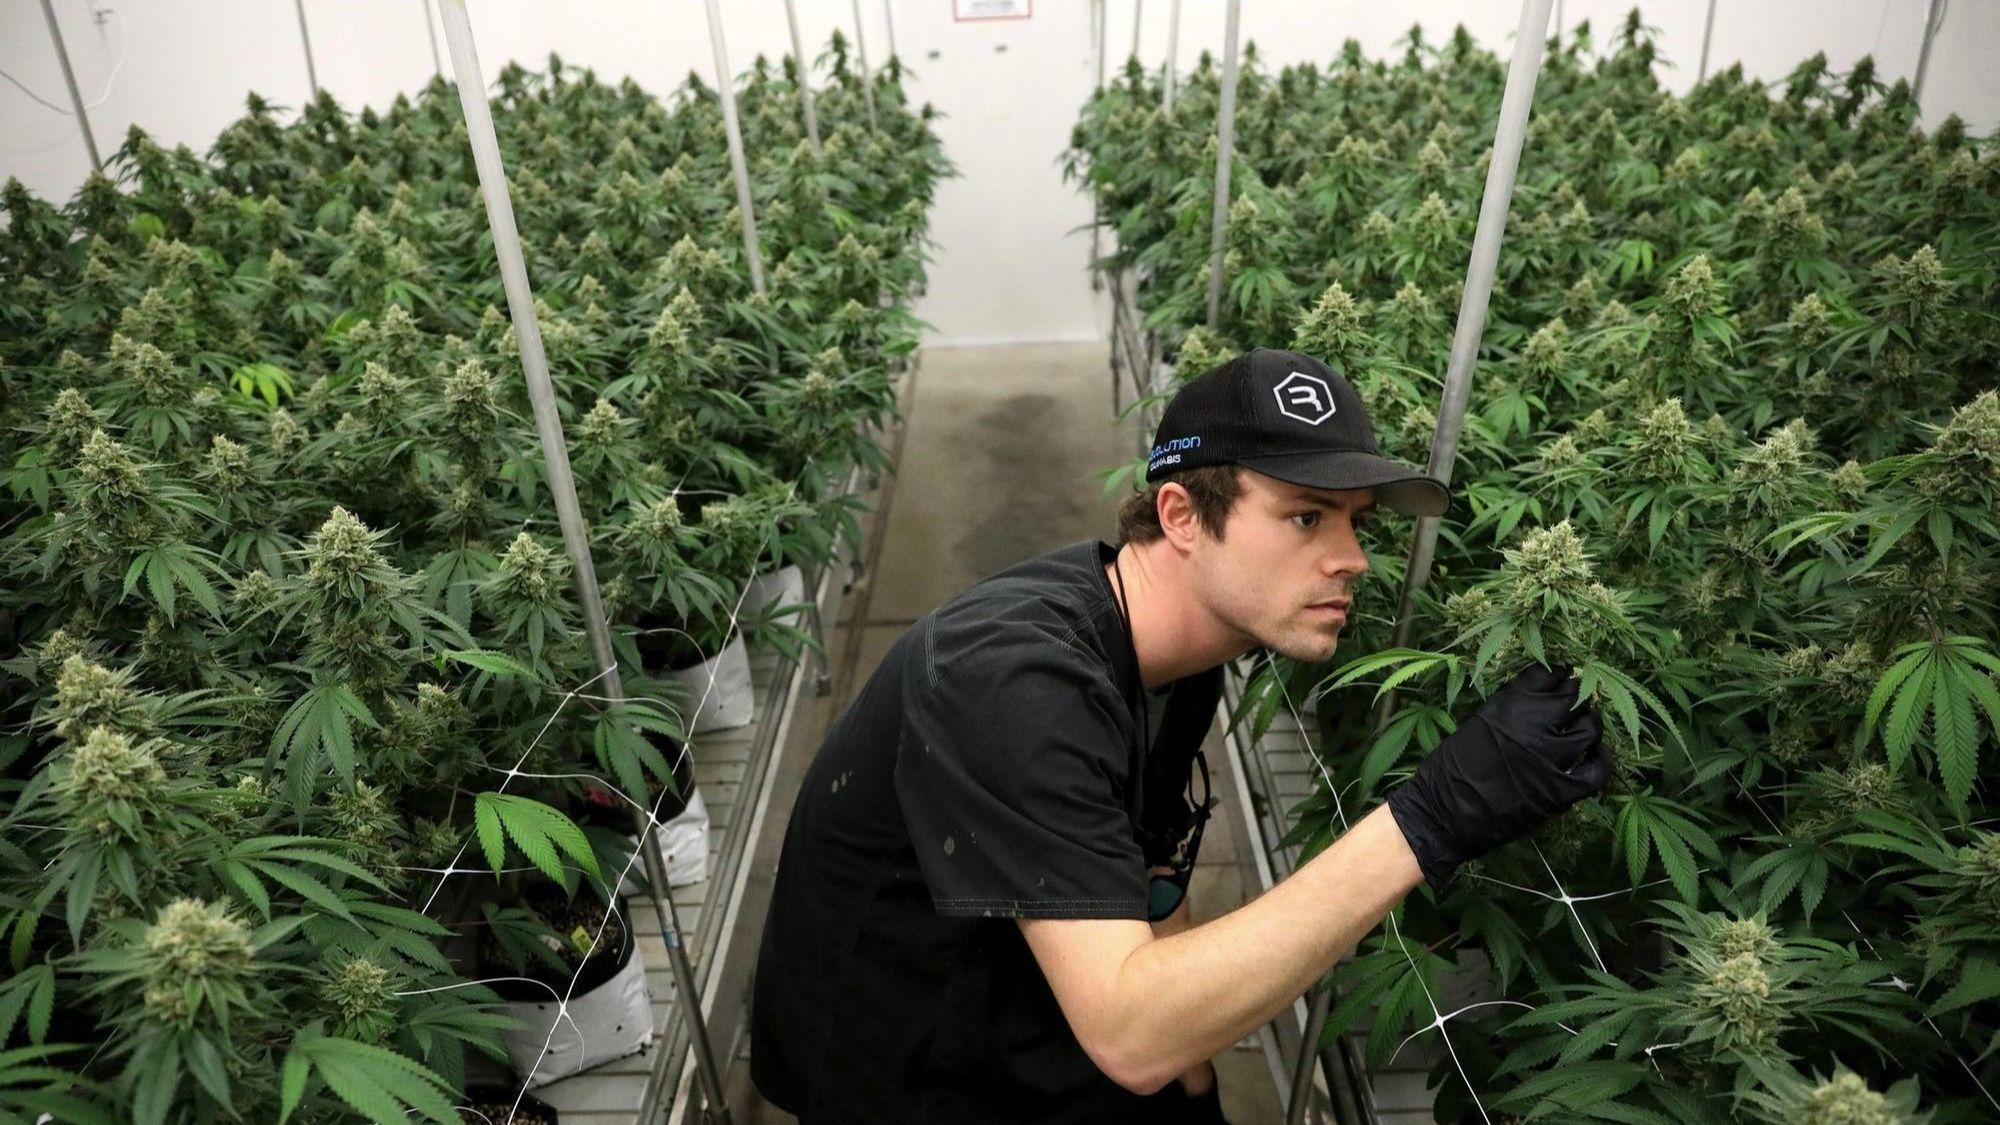 Proposal would make state medical pot program permanent, add osteoarthritis, chronic pain, autism, migraines, other conditions